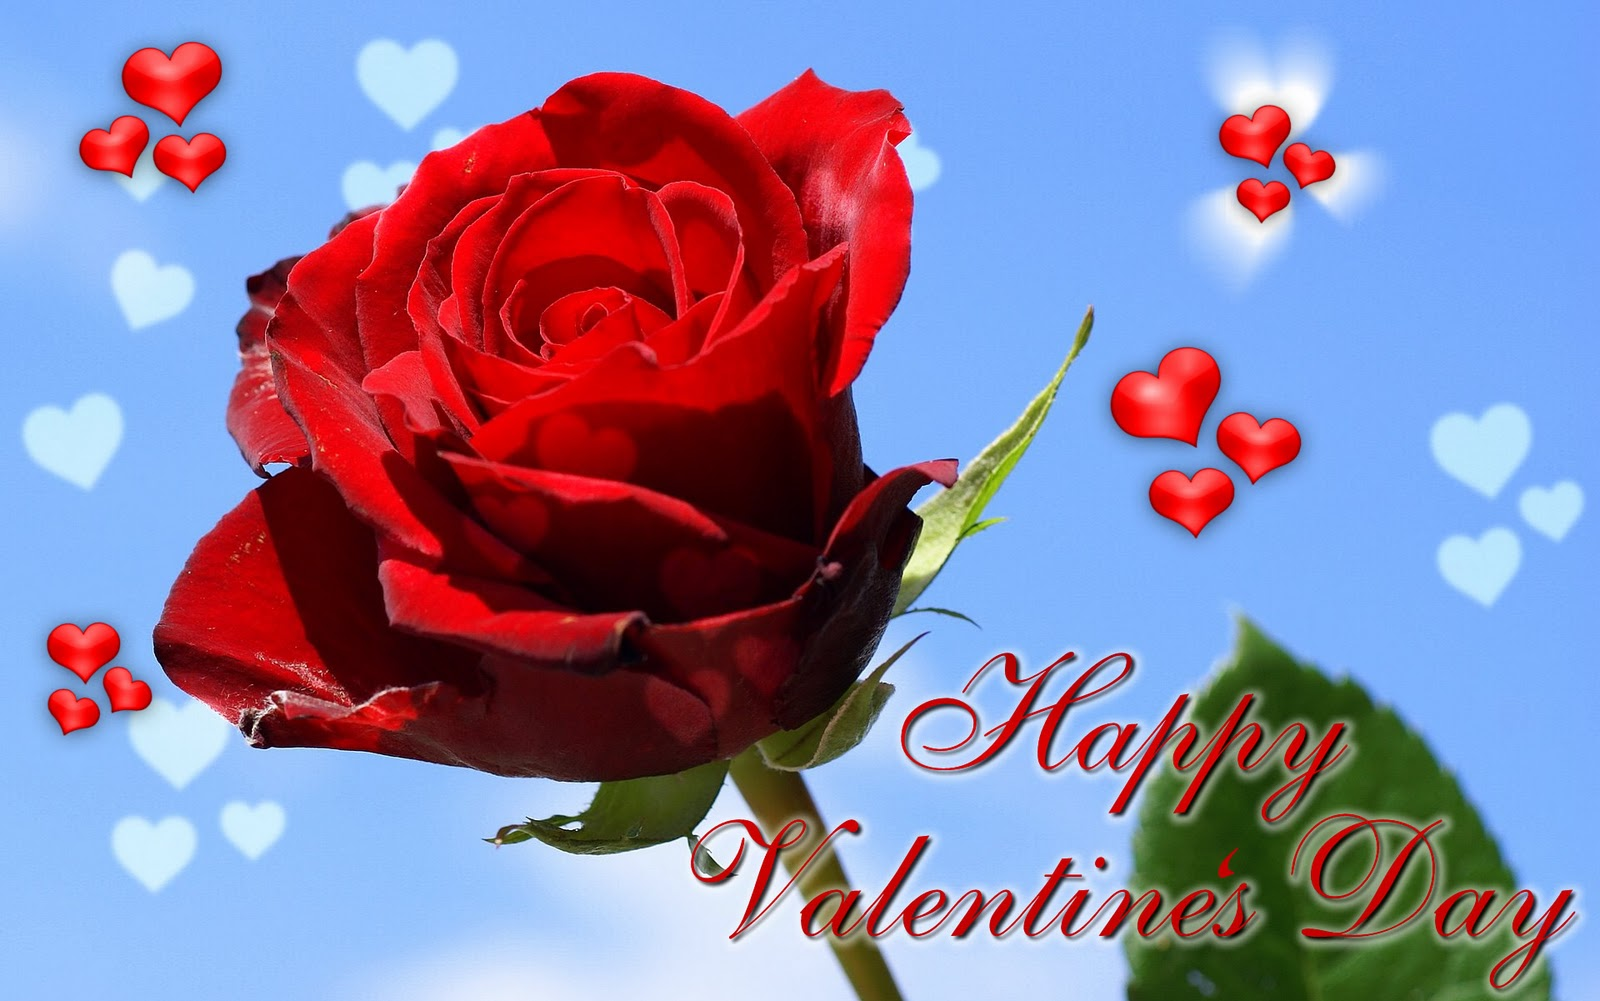 LOVE MESSAGES QUOTES IMAGES PICTURES POEMS WALLPAPERS: happy valentines day wallpaper